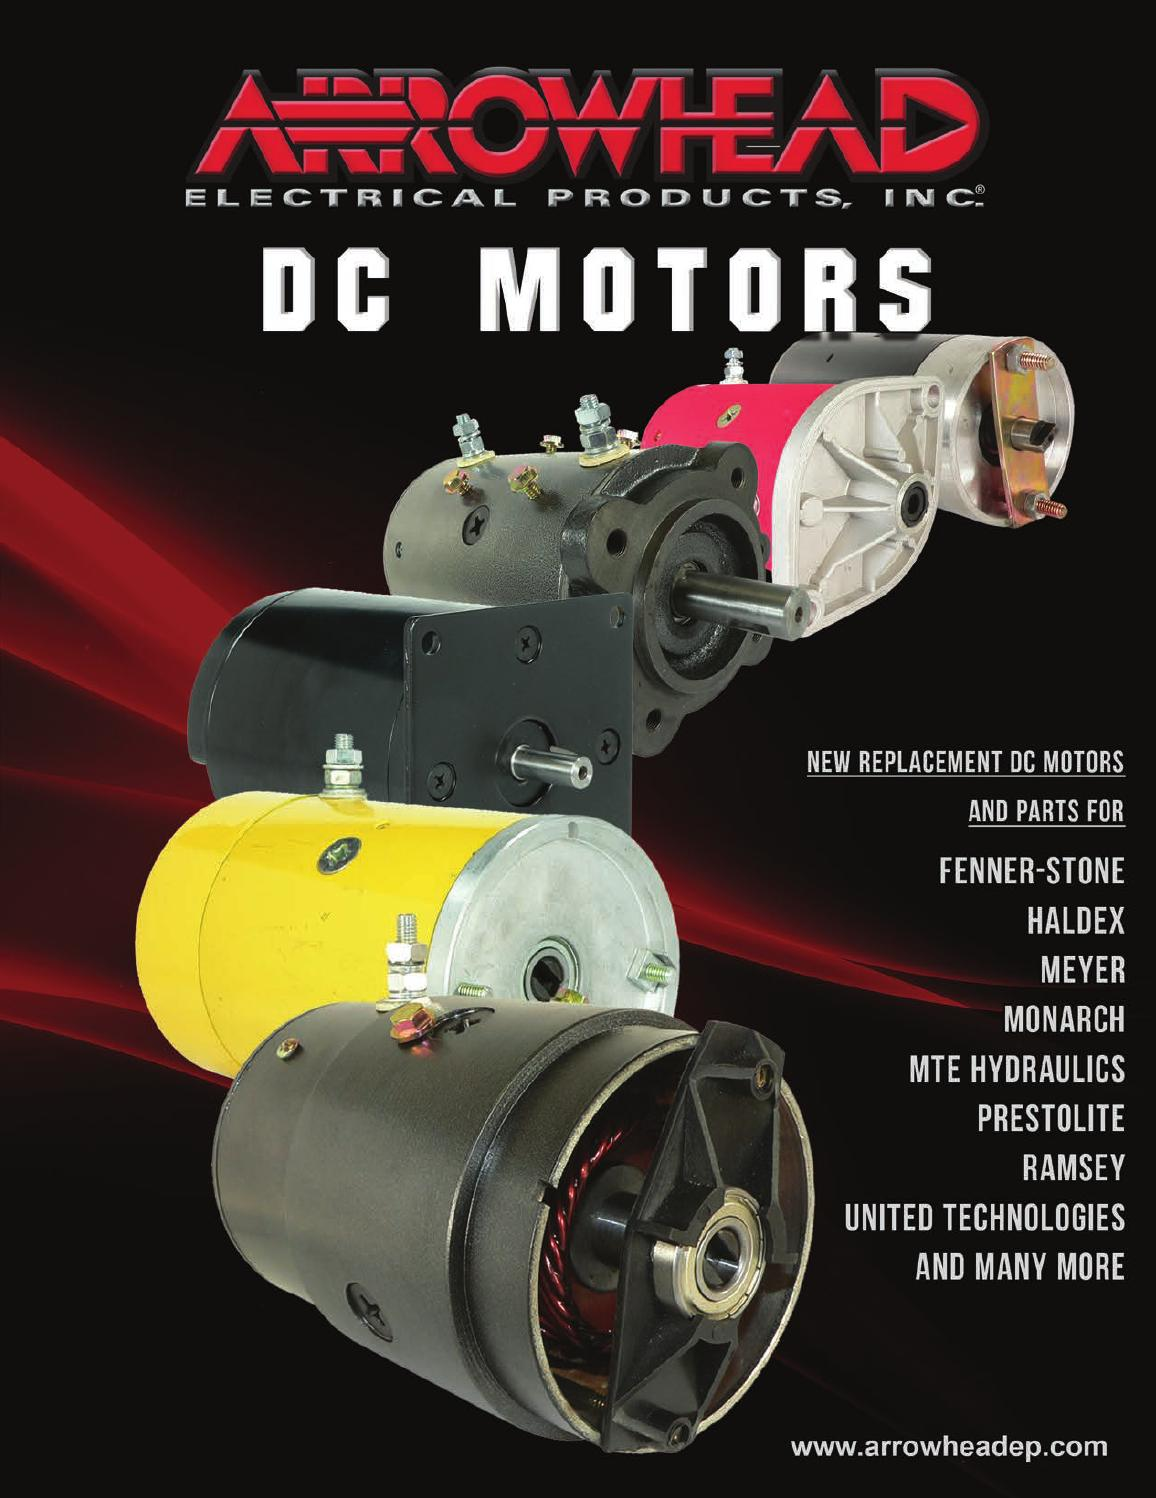 hight resolution of arrowhead electrical products dc motors catalog by arrowhead electrical products issuu